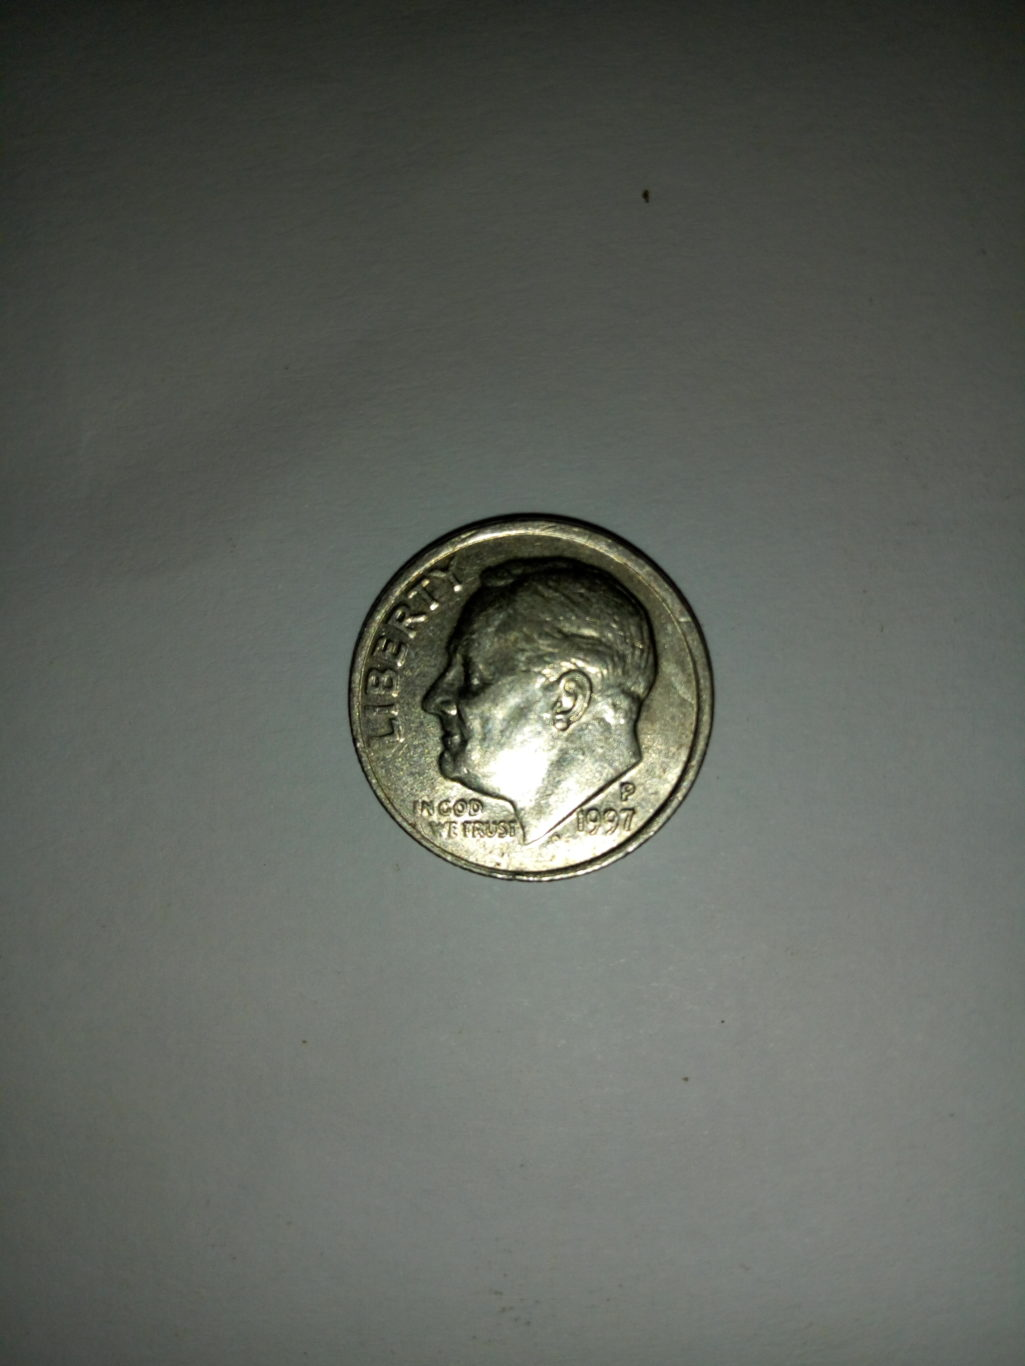 1997_ united States of america 1 dime